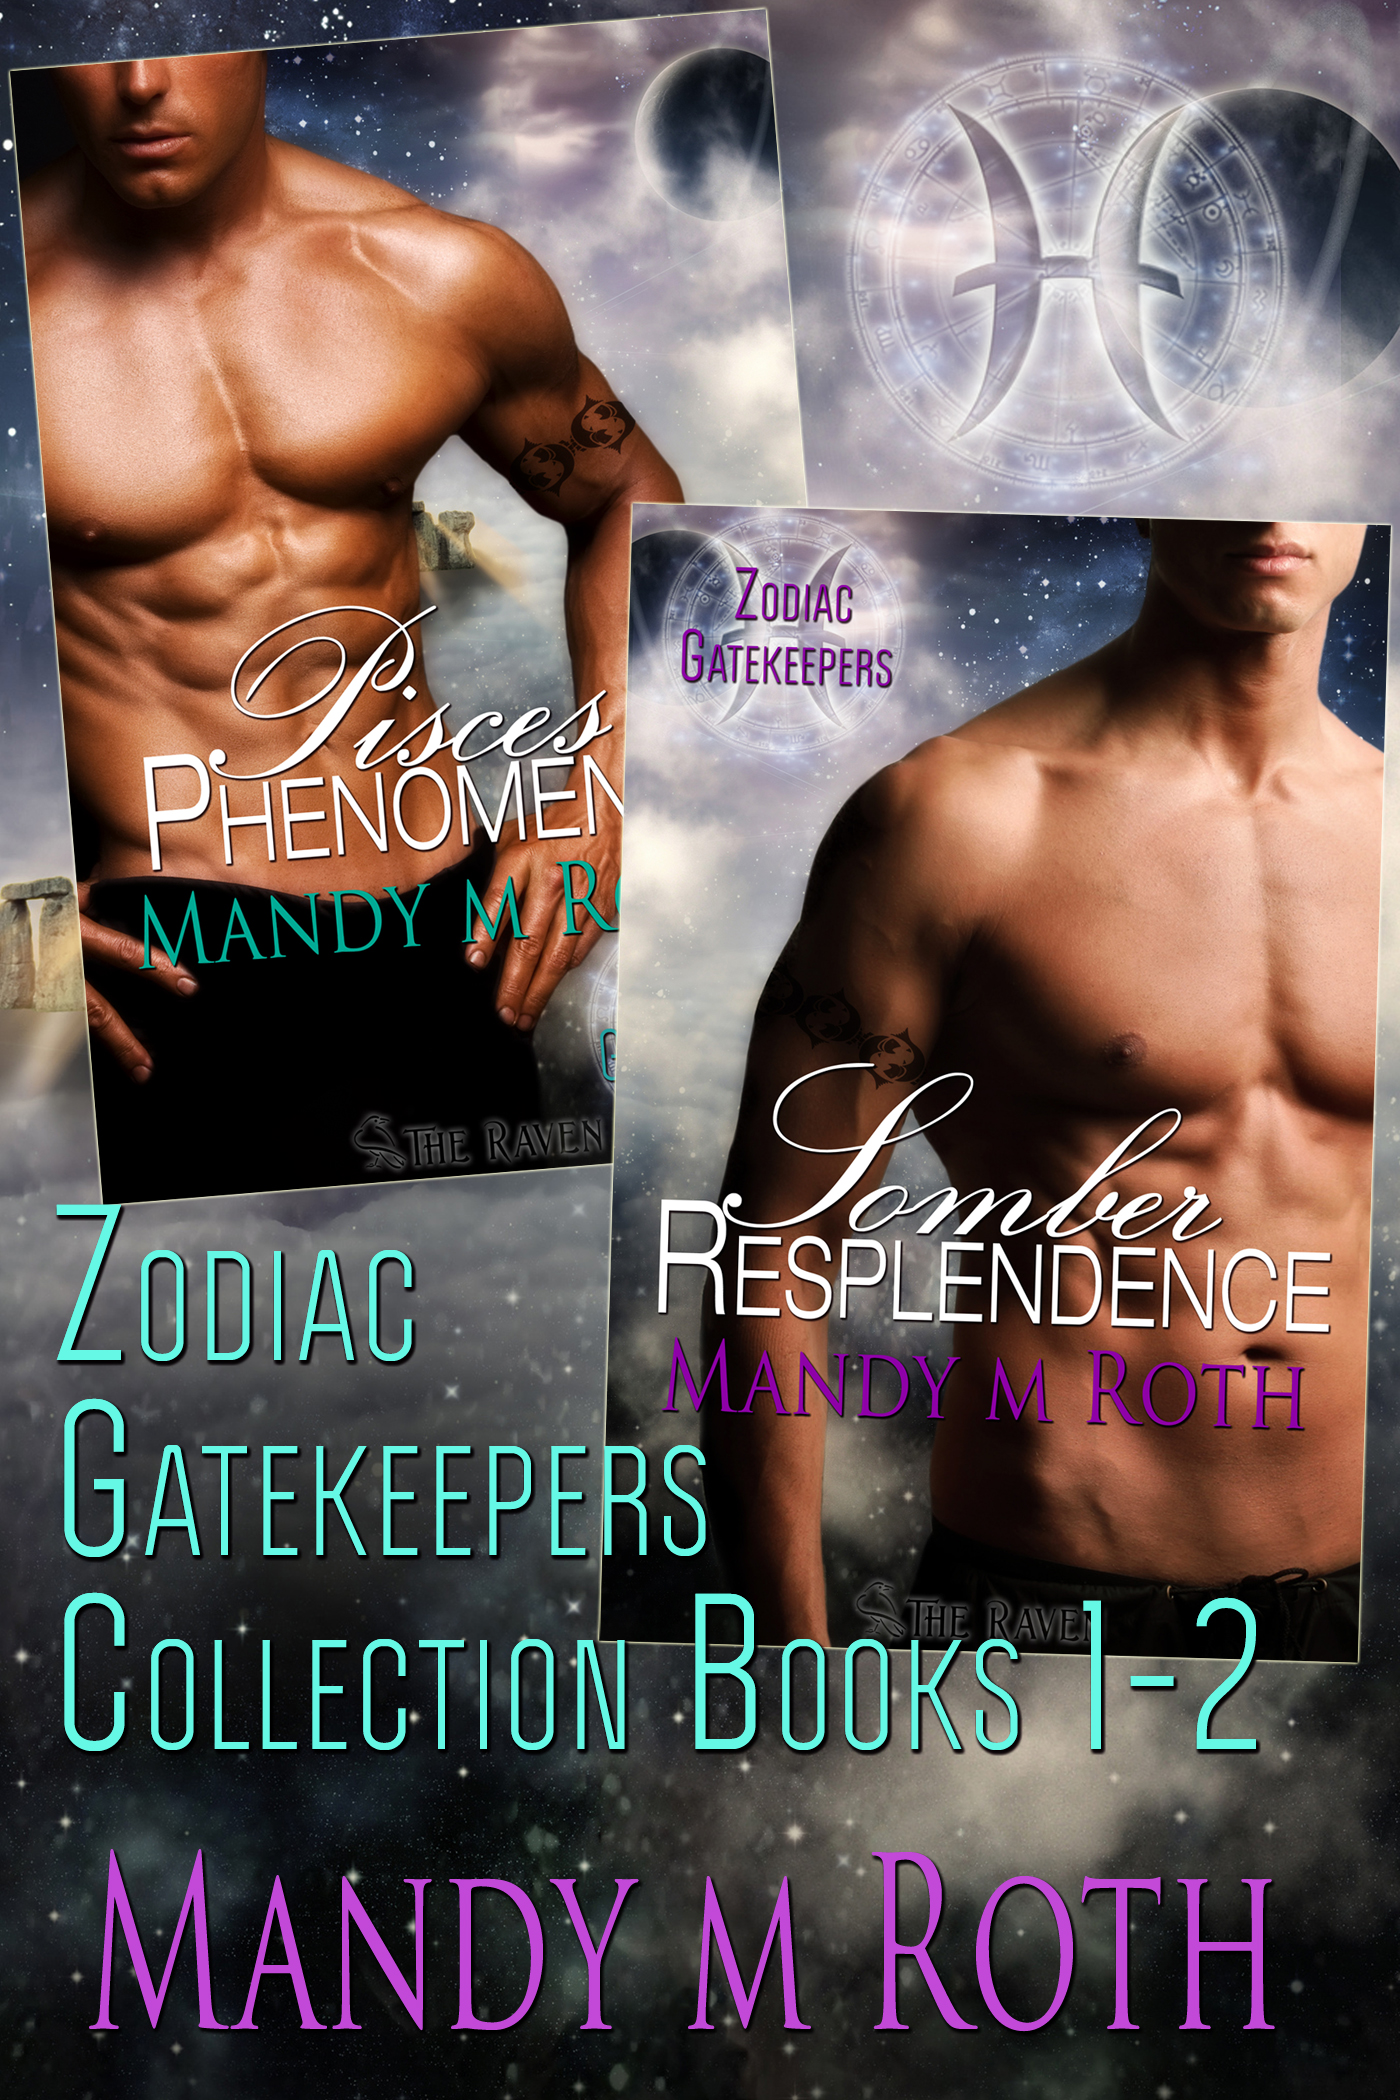 Mandy M. Roth - The Zodiac Gatekeeper Collection Books 1-2